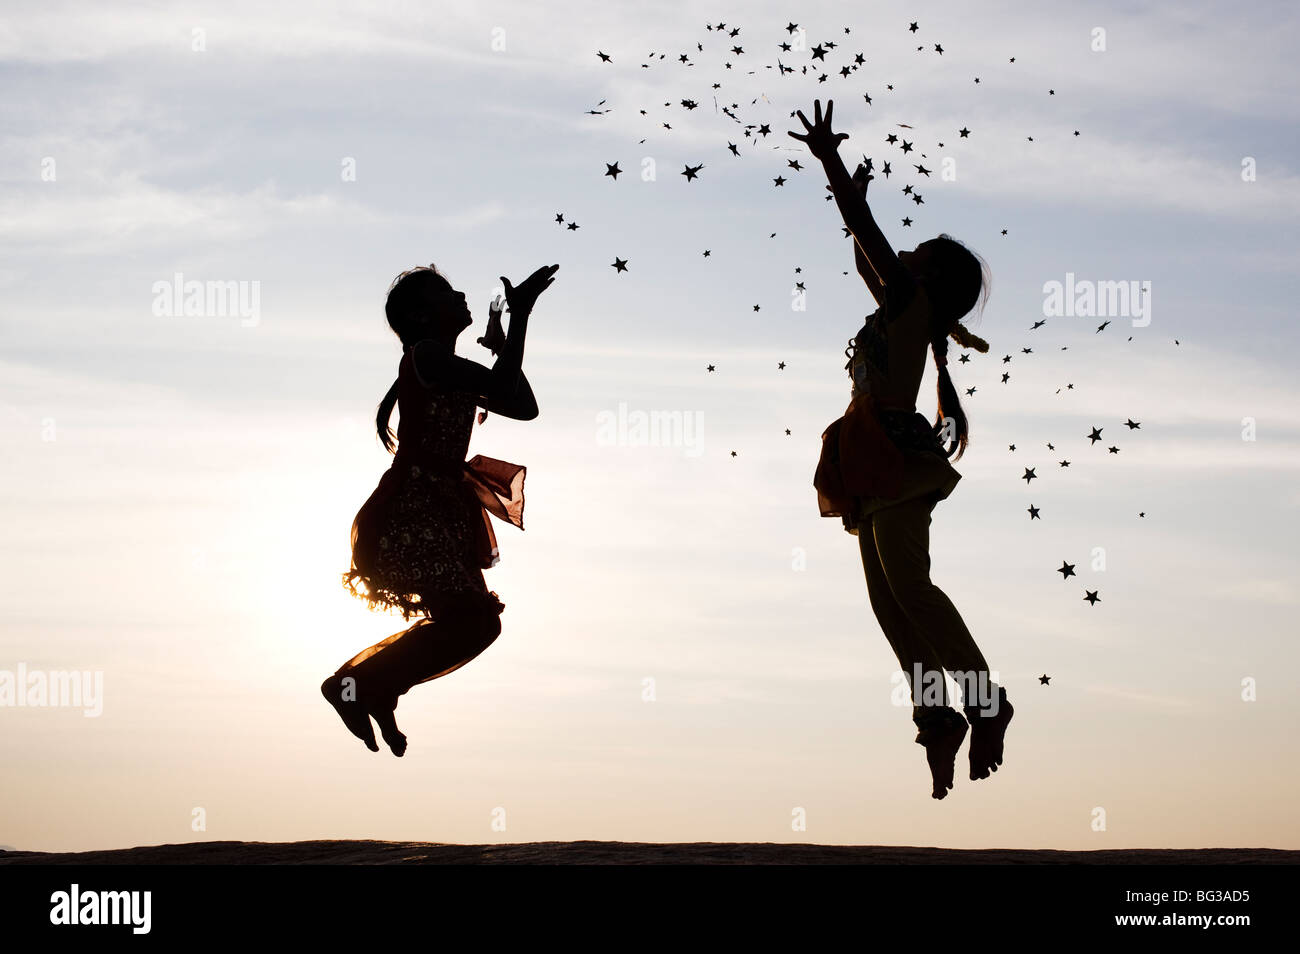 Silhouette of two young Indian girls jumping, throwing and catching stars. India - Stock Image